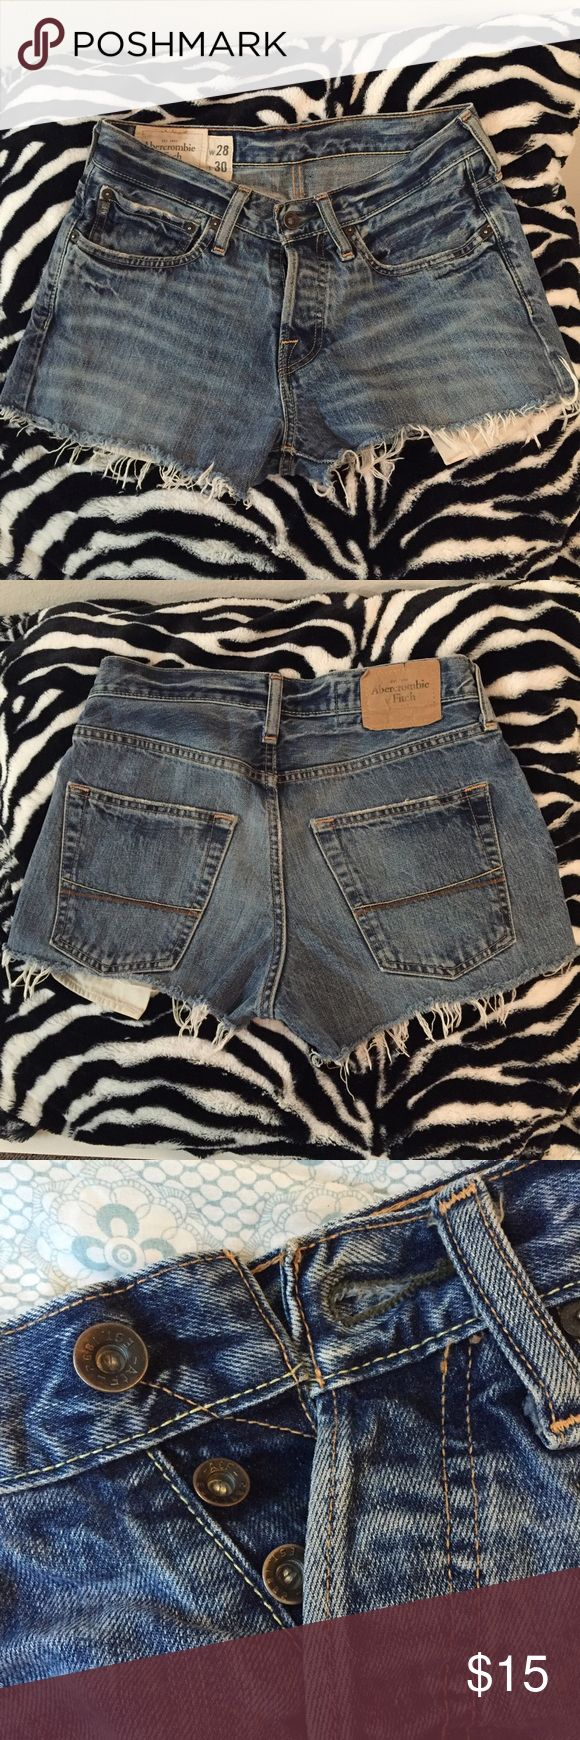 """Homemade cutoff shorts from A&F men's jeans Cute and/or grungy! Inseam: 2.5"""" on right side, 1.5"""" on left side Abercrombie & Fitch Shorts Jean Shorts"""